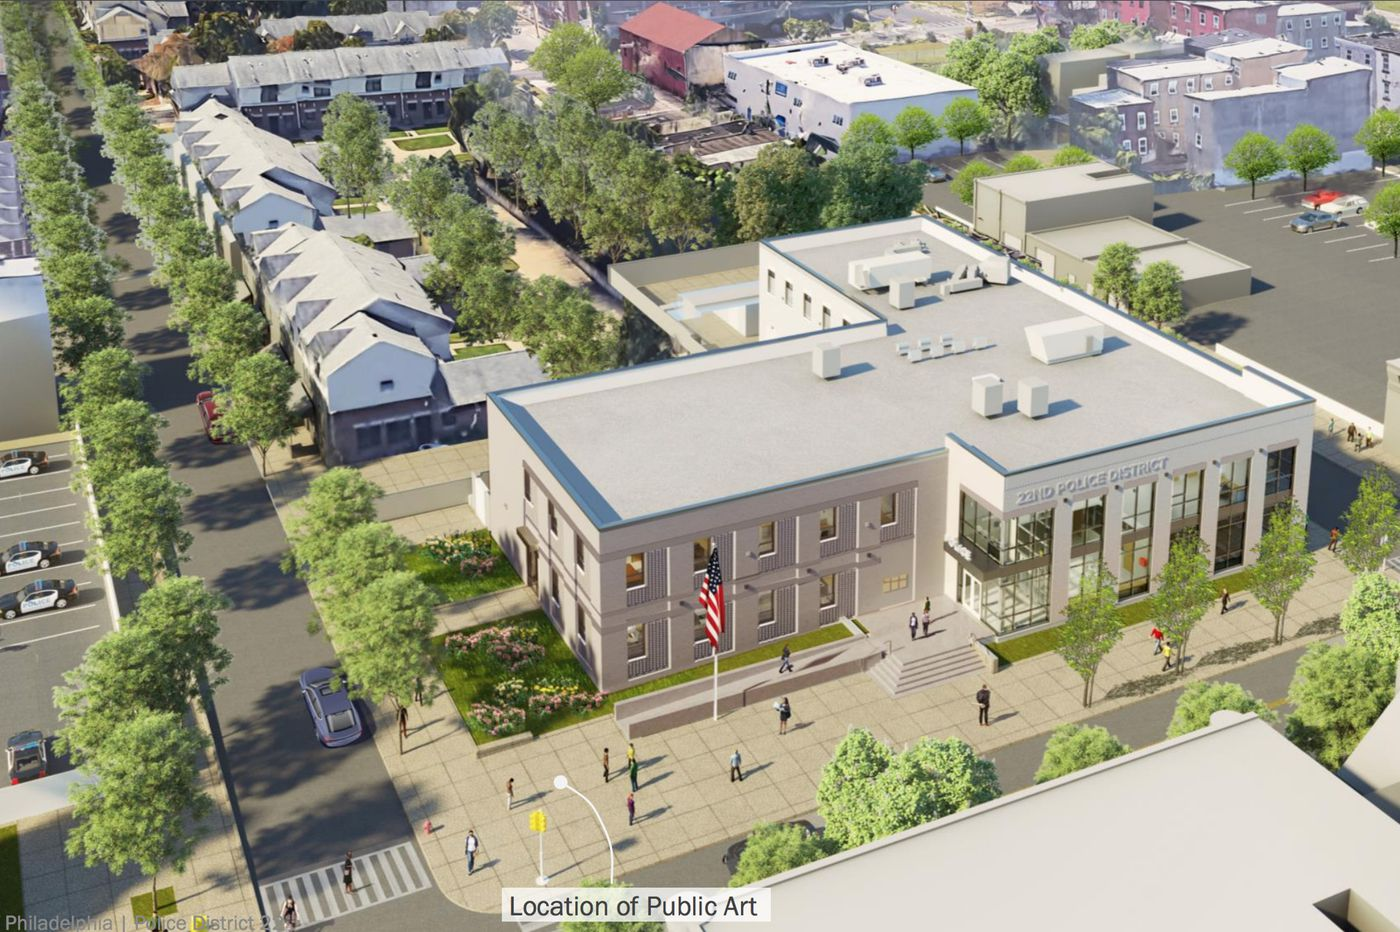 Plans for a North Philly police station make even less sense after the George Floyd protests | Inga Saffron